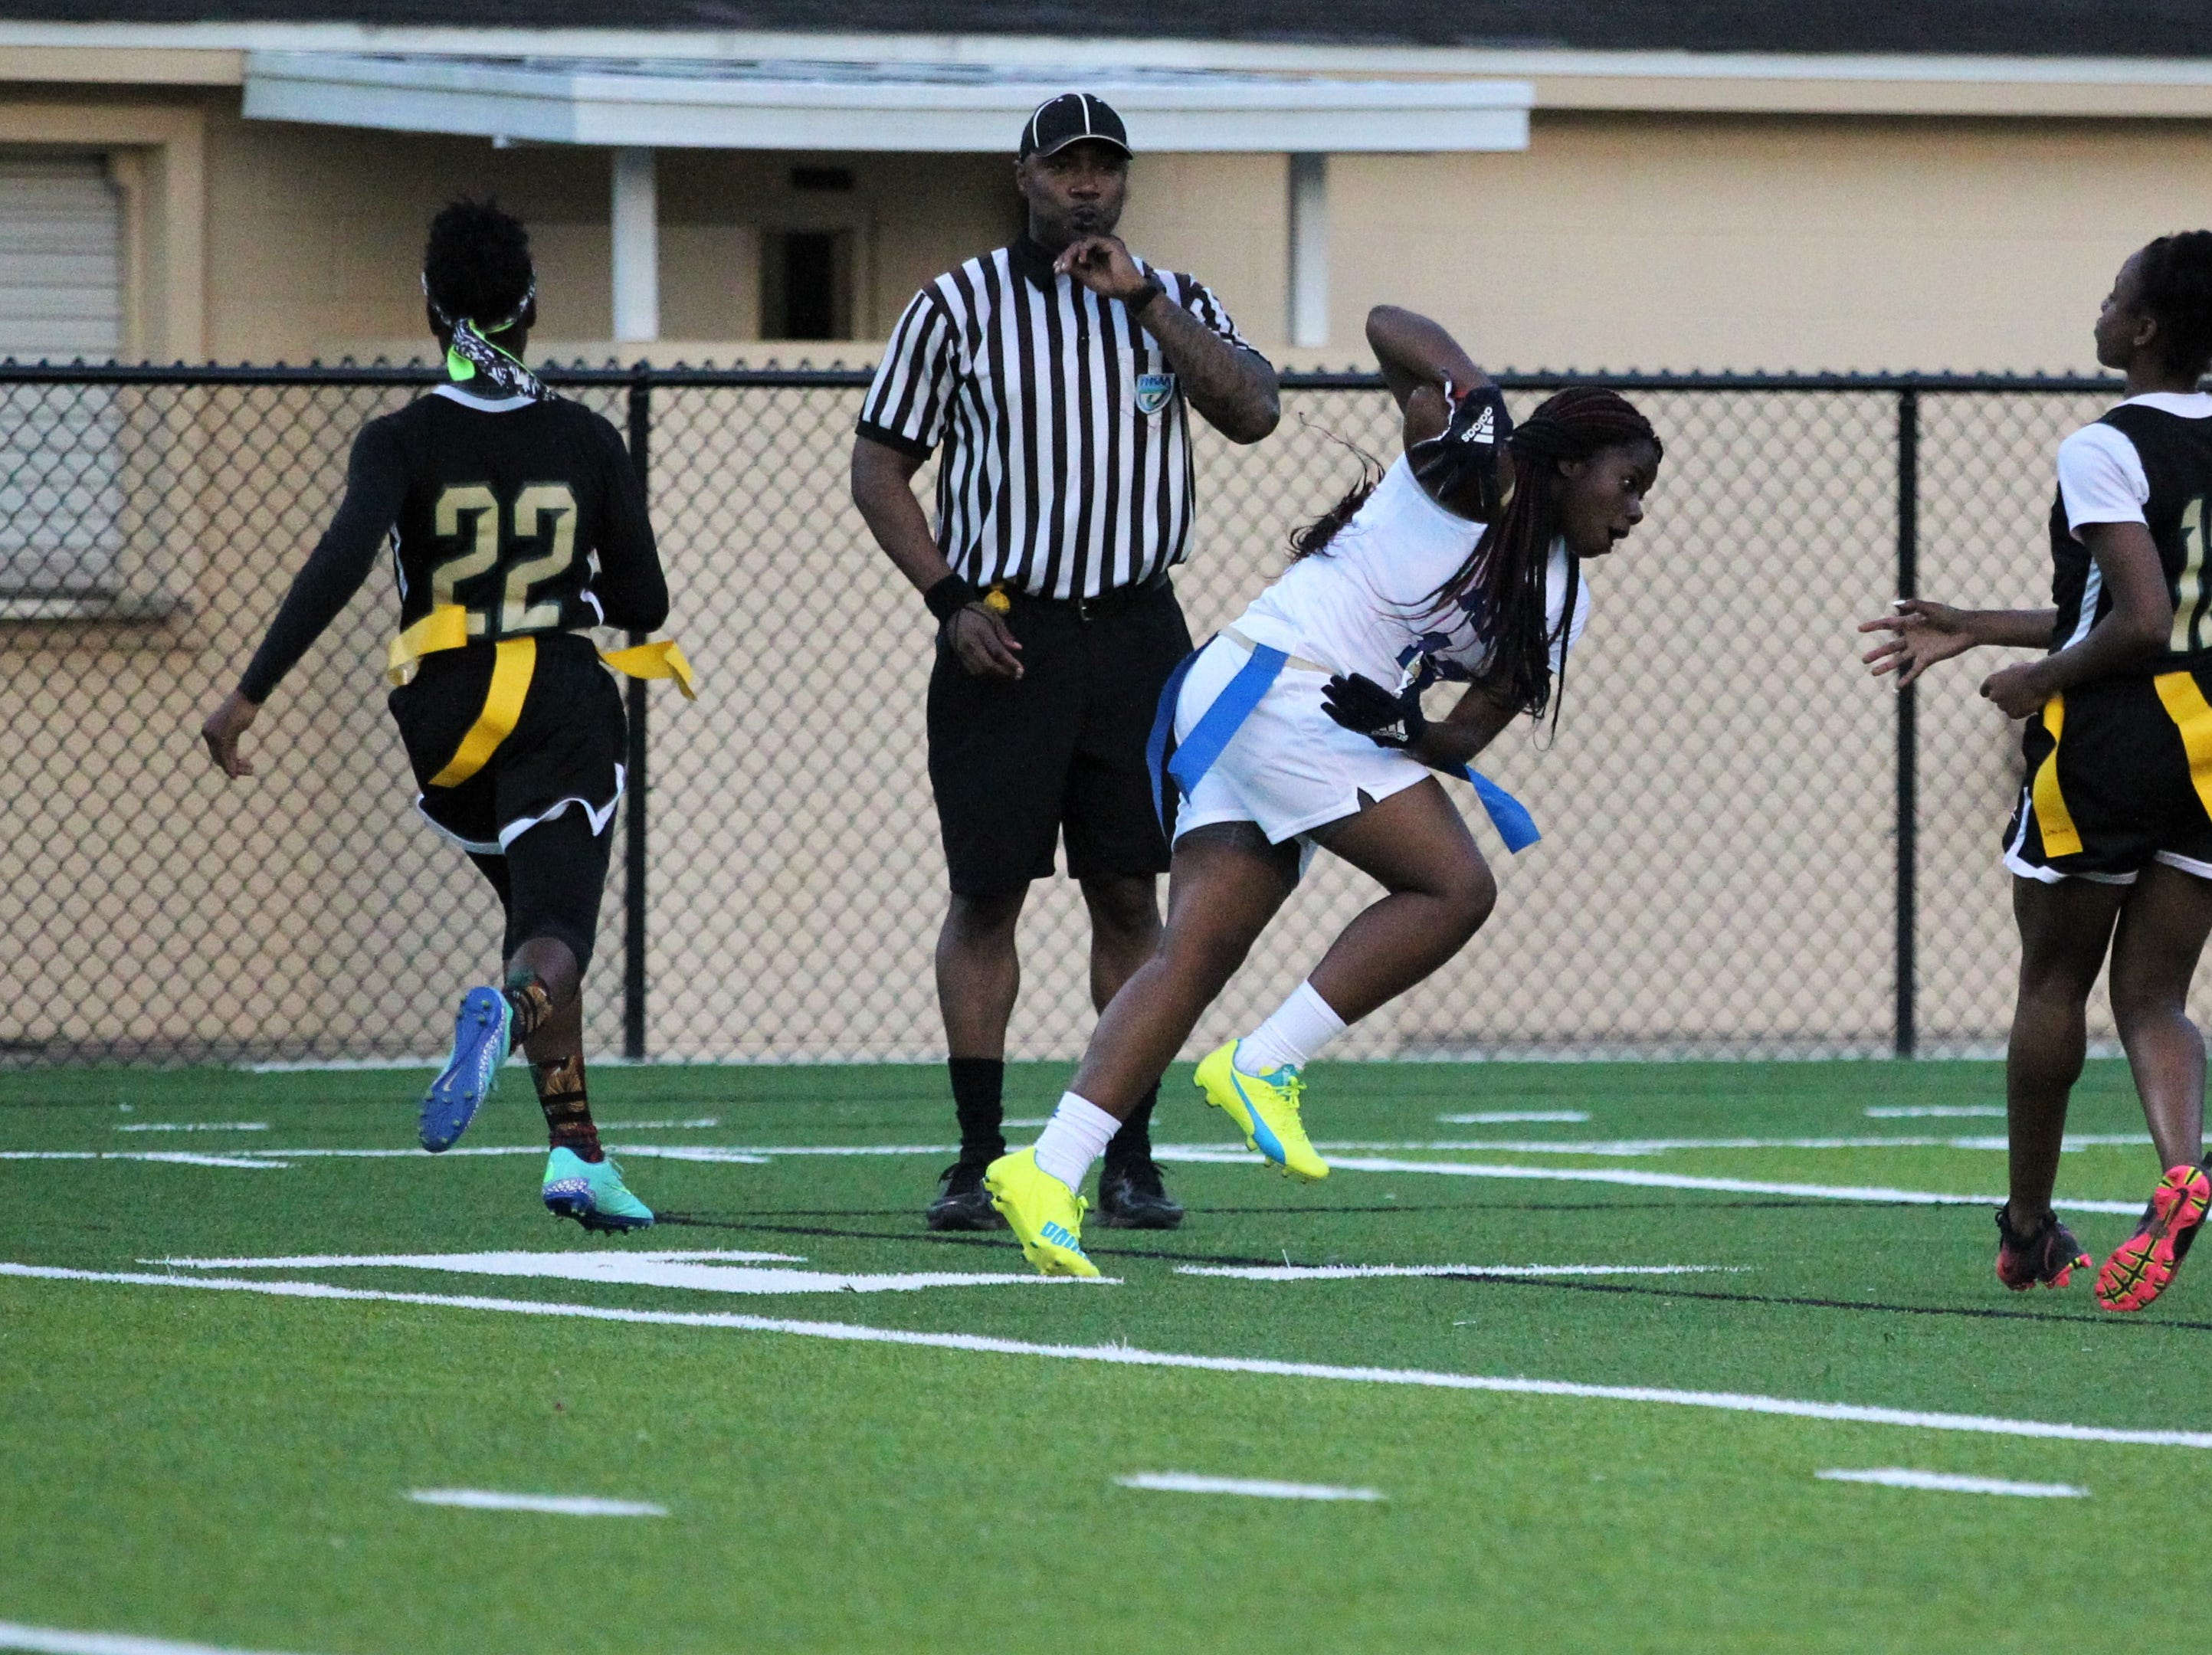 Godby senior Essence Nobles makes a touchdown catch as the Cougars' flag football team beat Lincoln 25-6 at Gene Cox Stadium on March 14, 2019.